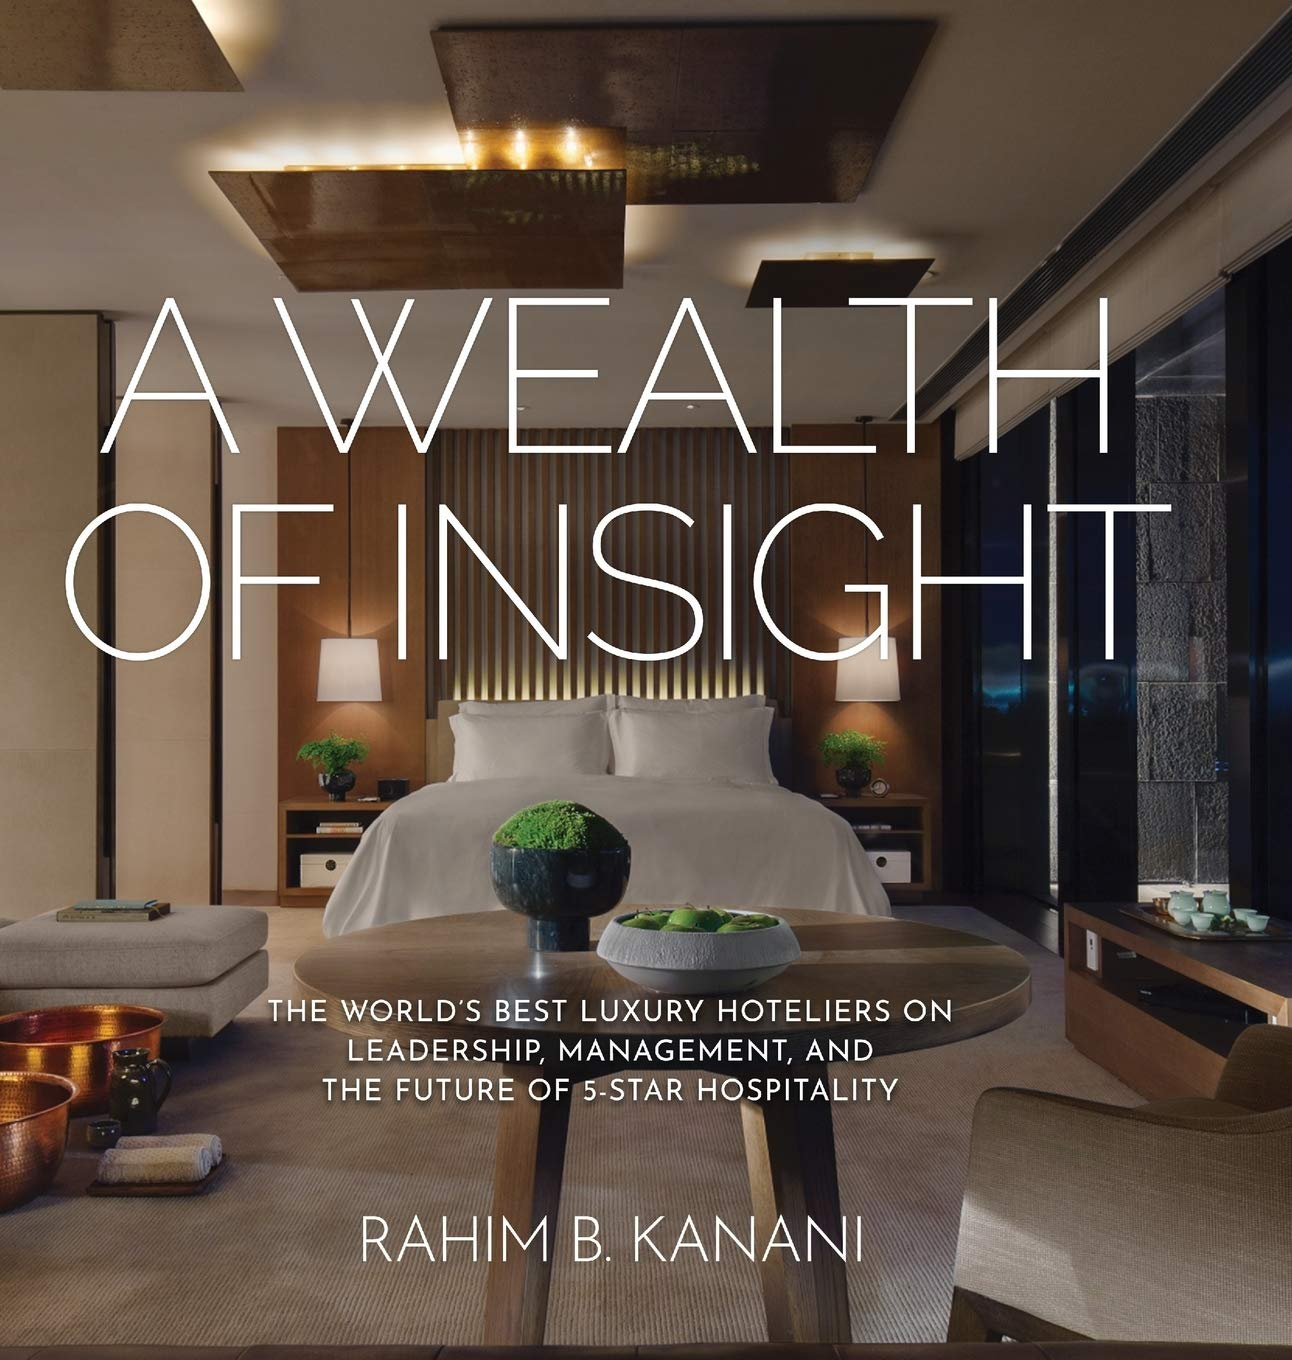 A Wealth Of Insight The World S Best Luxury Hoteliers On Leadership Management And The Future Of 5 Star Hospitality Kanani Rahim B 9781633936201 Amazon Com Books